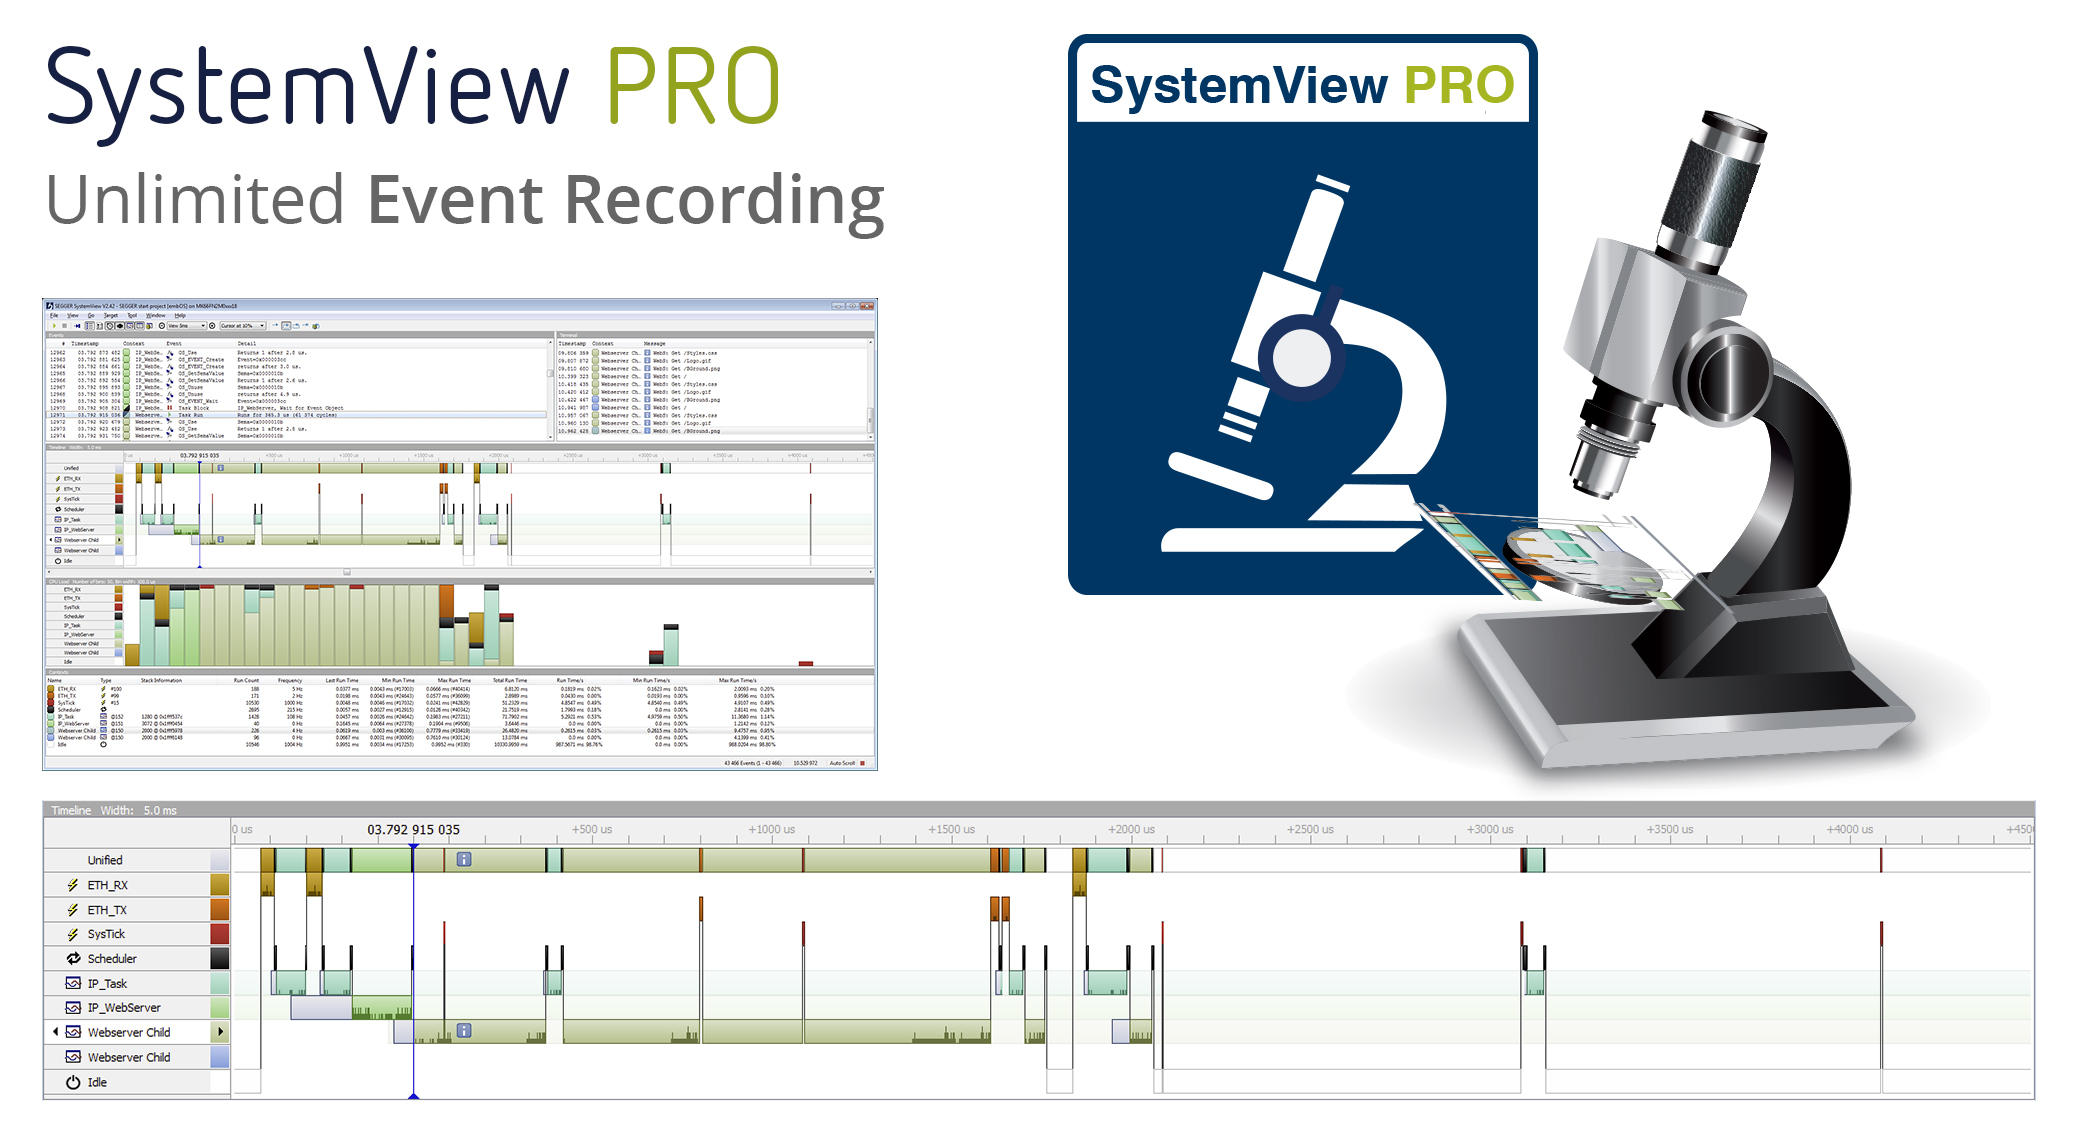 PRO version of the SystemView released